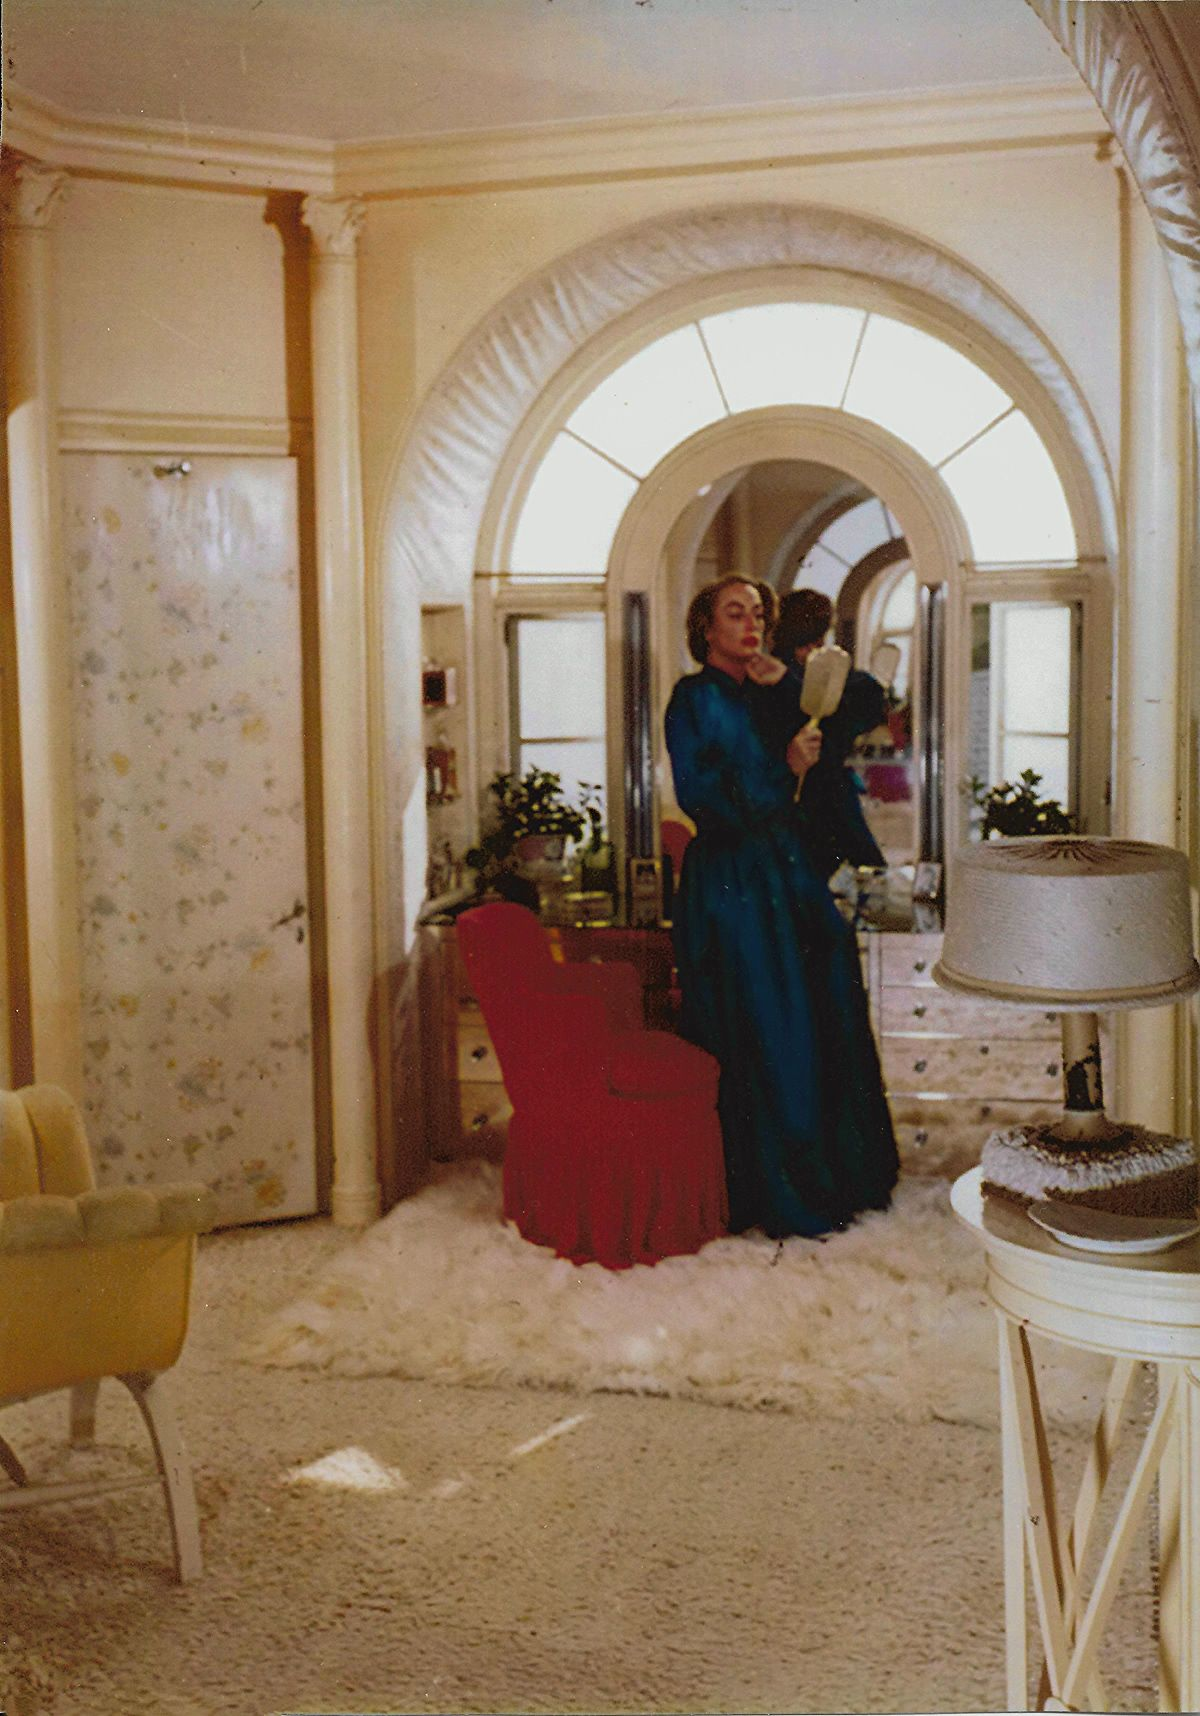 A Rare Color Photo From Joan S Dressing Room All White Rugs And Strange Padded Door And Arches 1940 S Joan Crawford Joan Crawford Children Joan